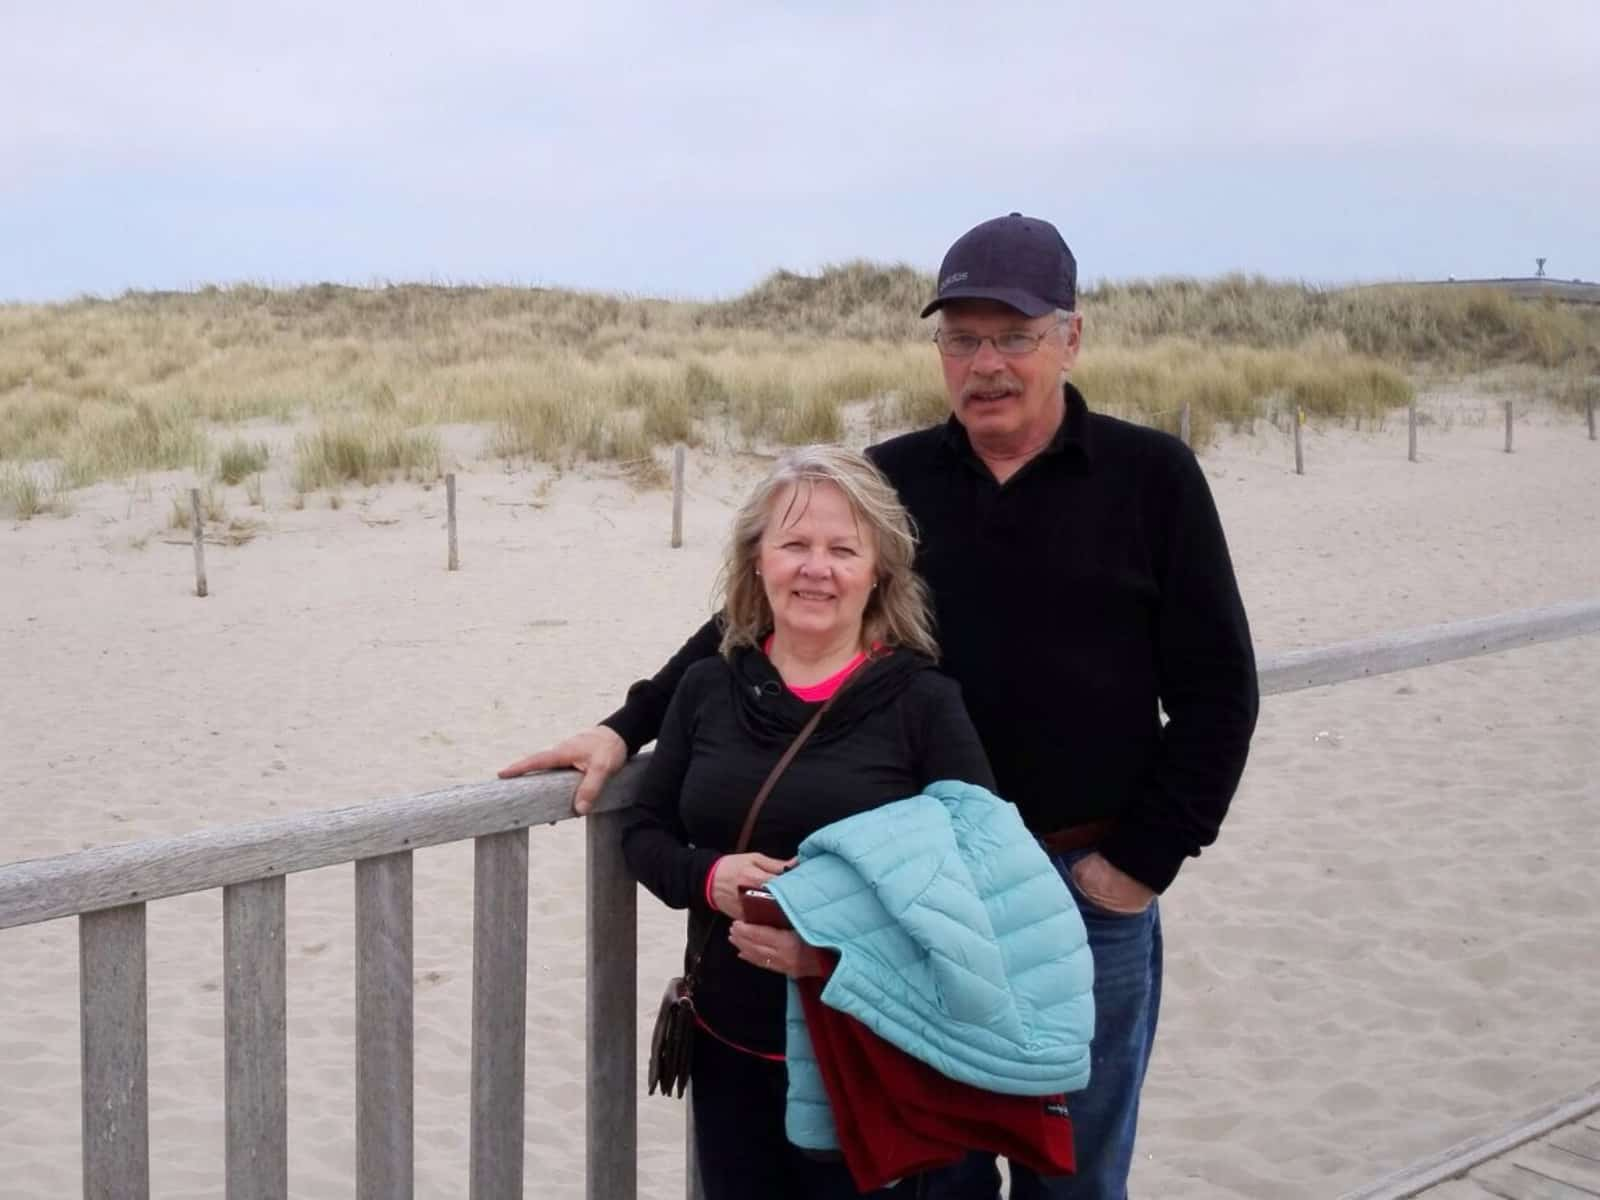 Carol & Wally from Edson, Alberta, Canada